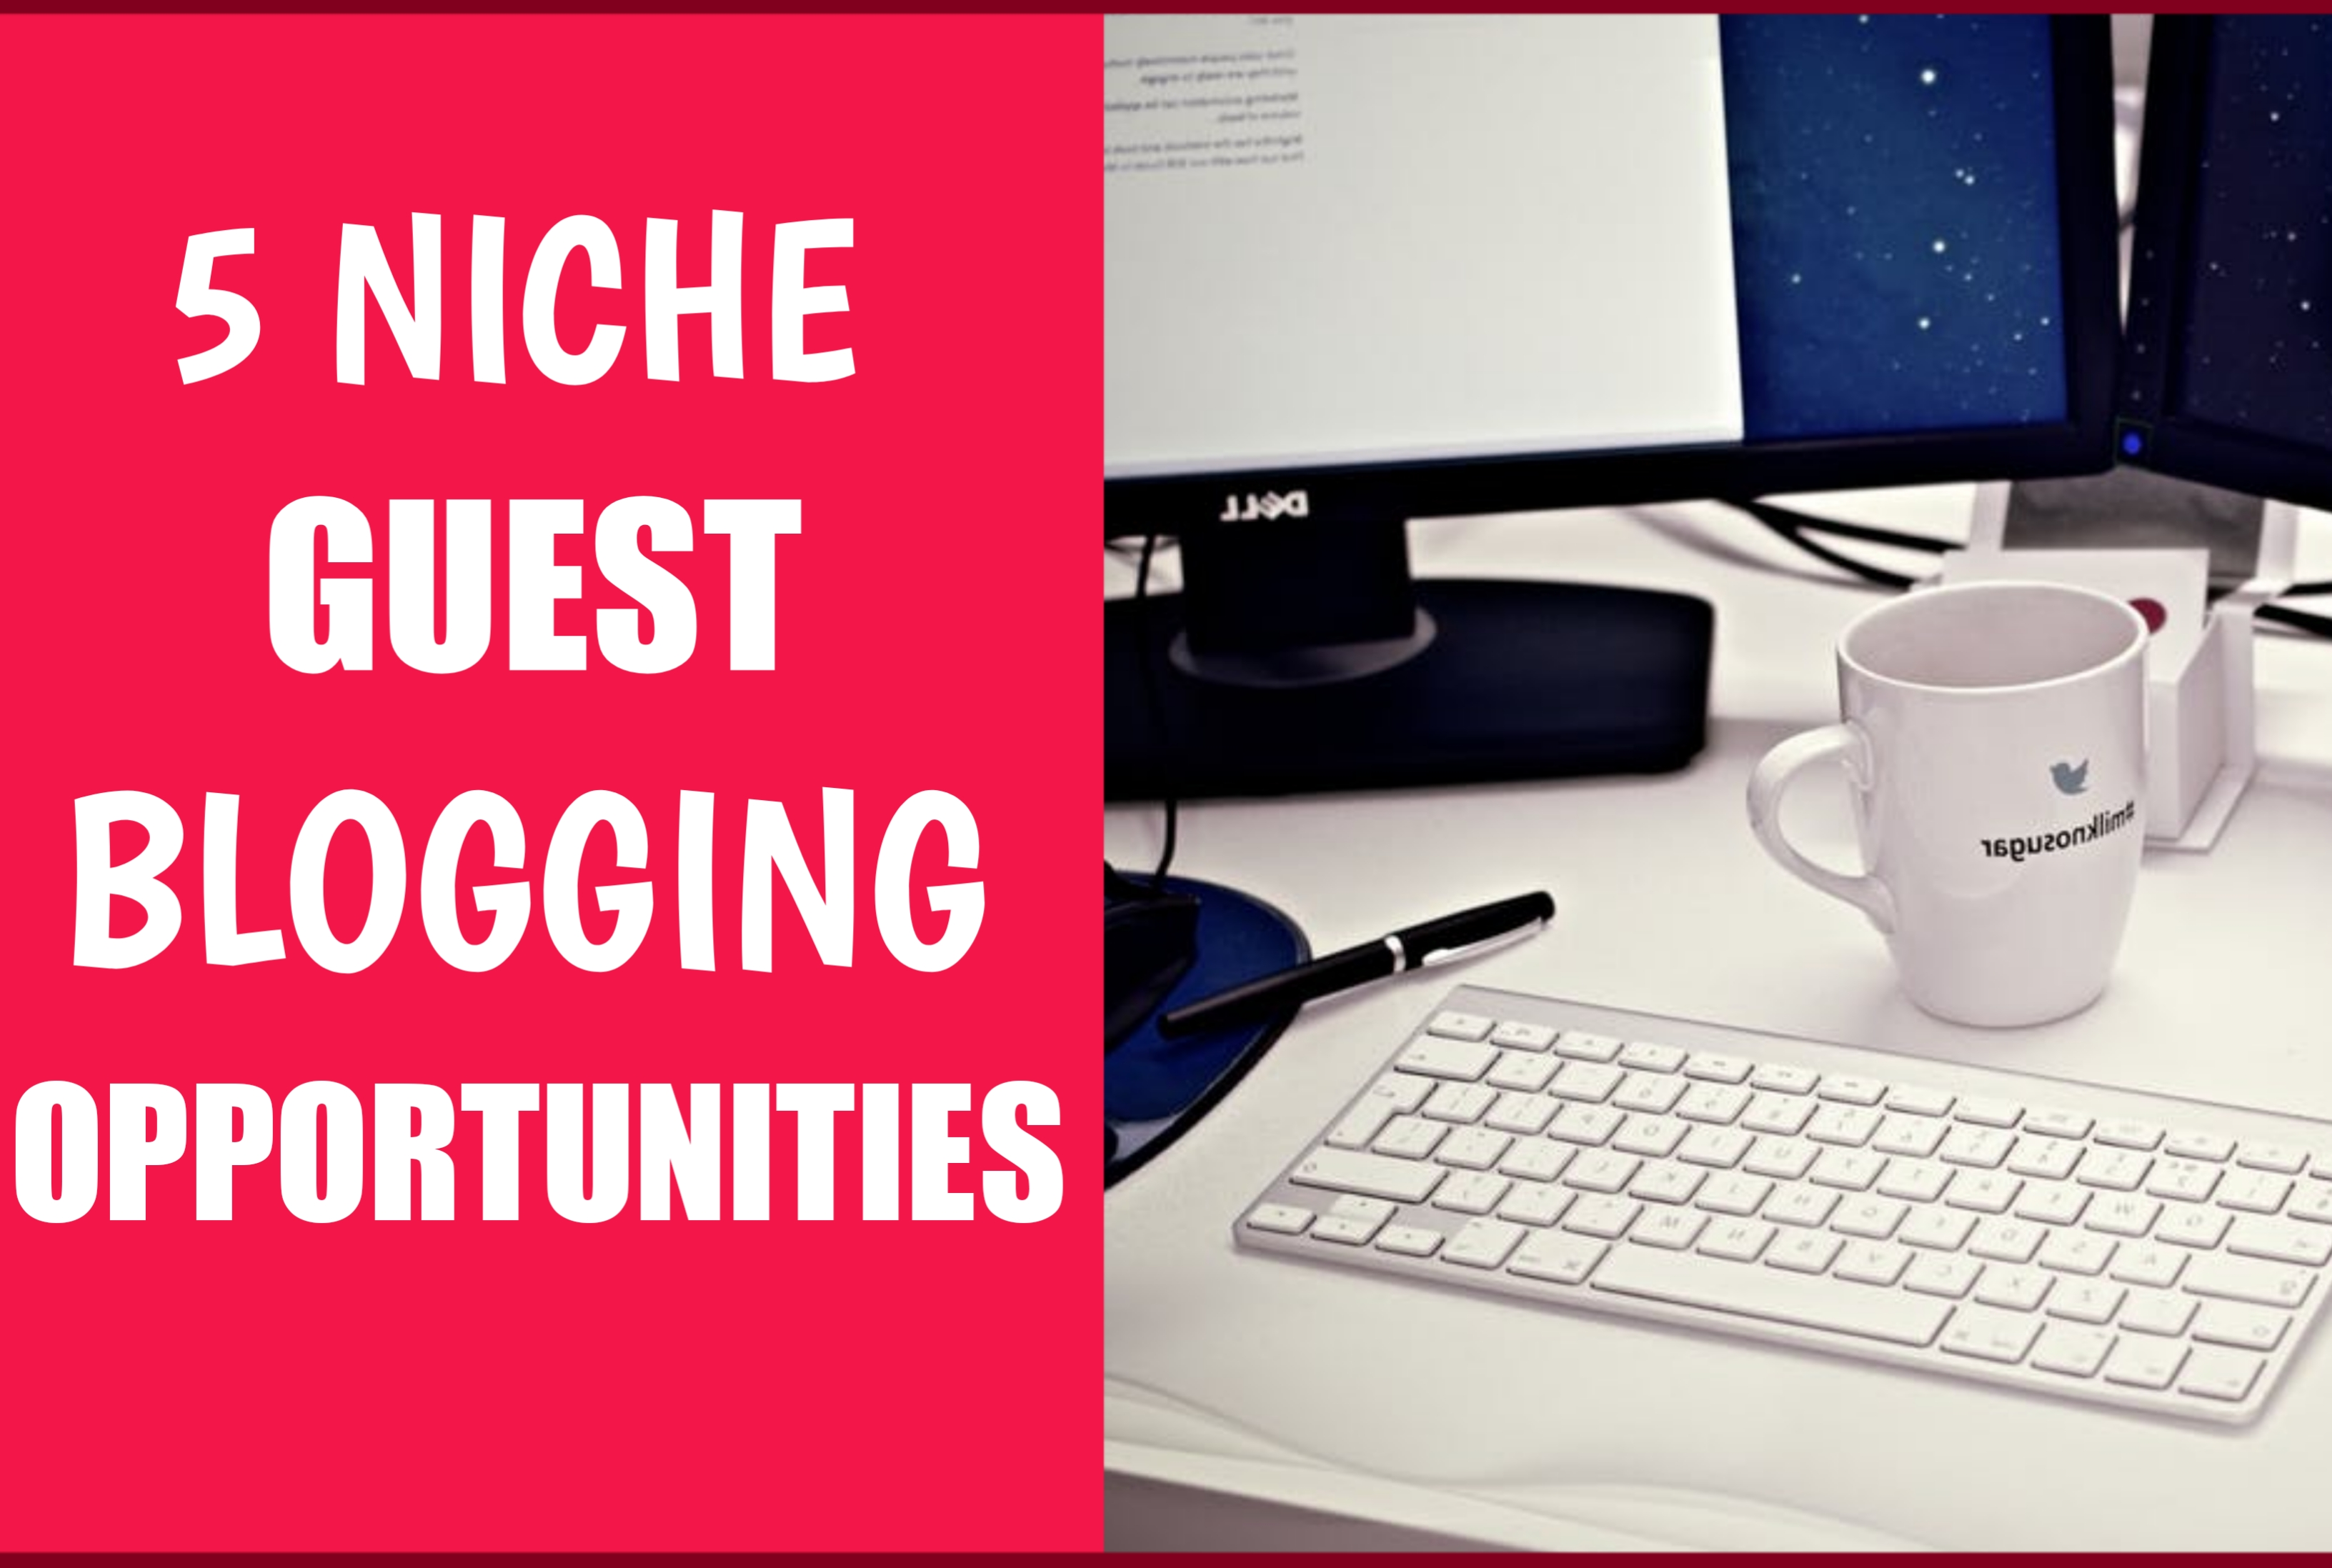 I Will Find 5 Guest Blogging Opportunities Related To Your Niche